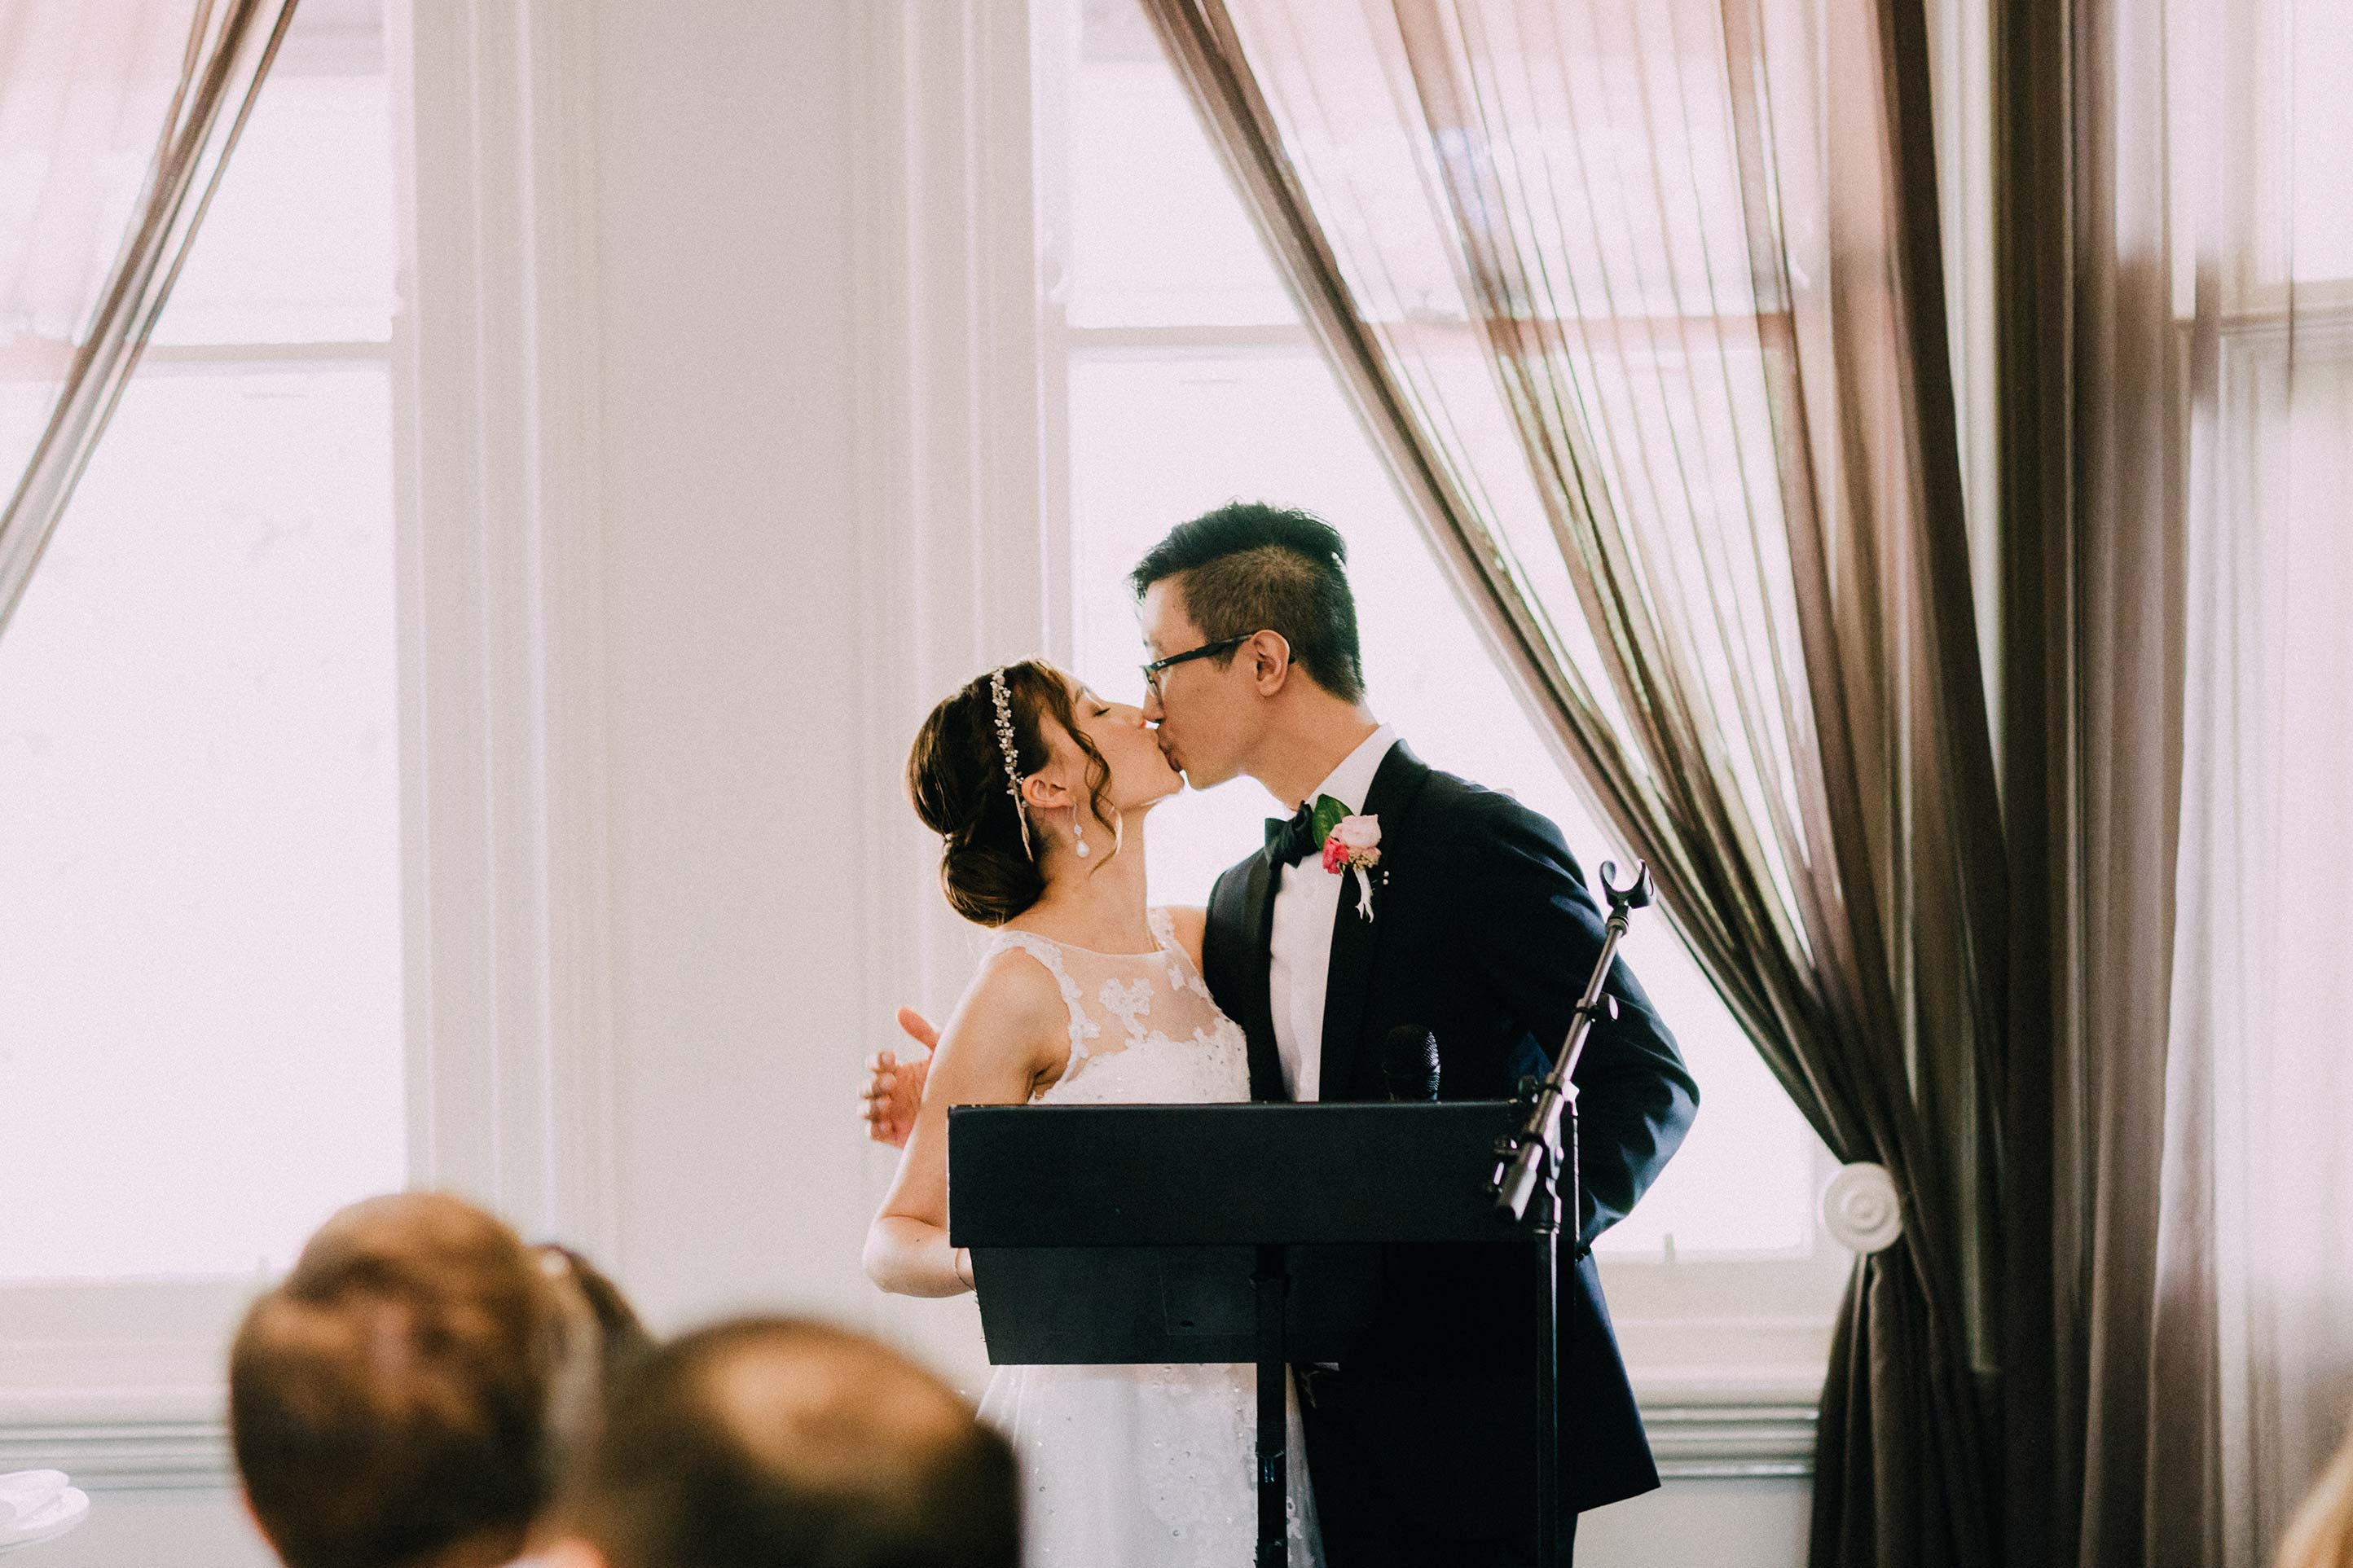 Melbourne-ripponlea-wedding-photographer-quat-quatta-lunch-reception-speech-kiss